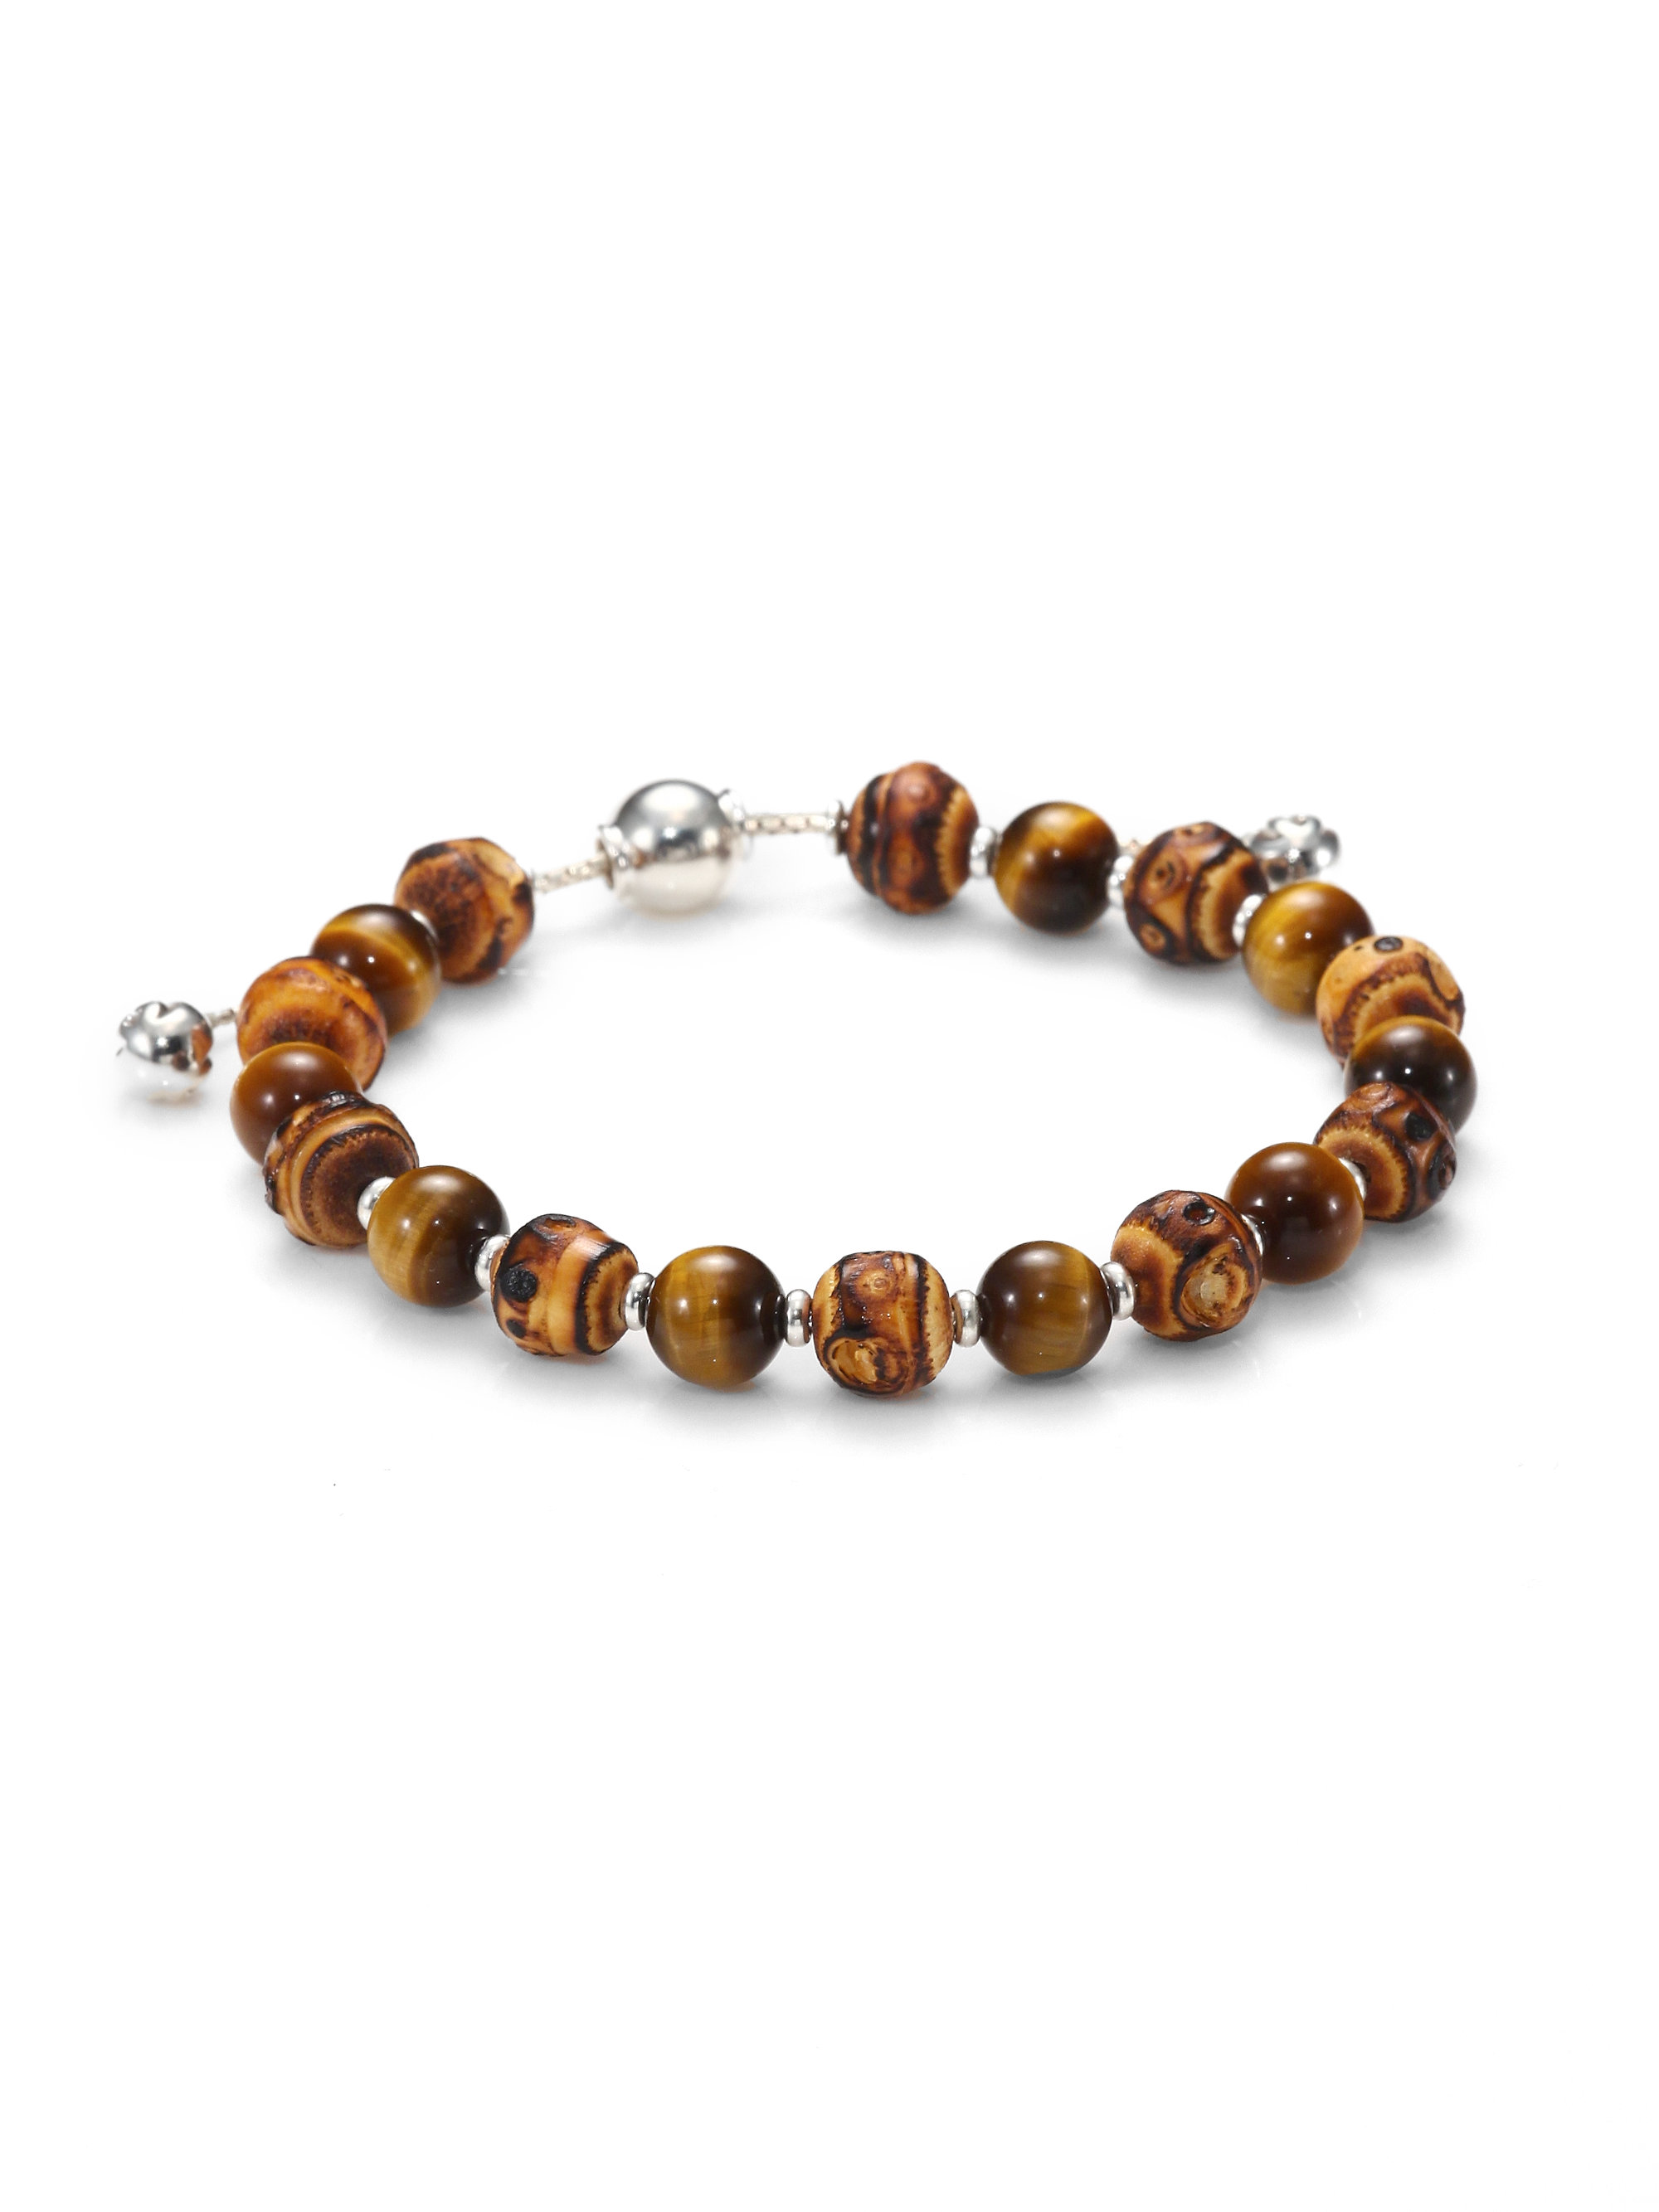 37bcf7e8d1007 Gucci Brown Bamboo, Tiger'S Eye & Sterling Silver Beaded Bracelet